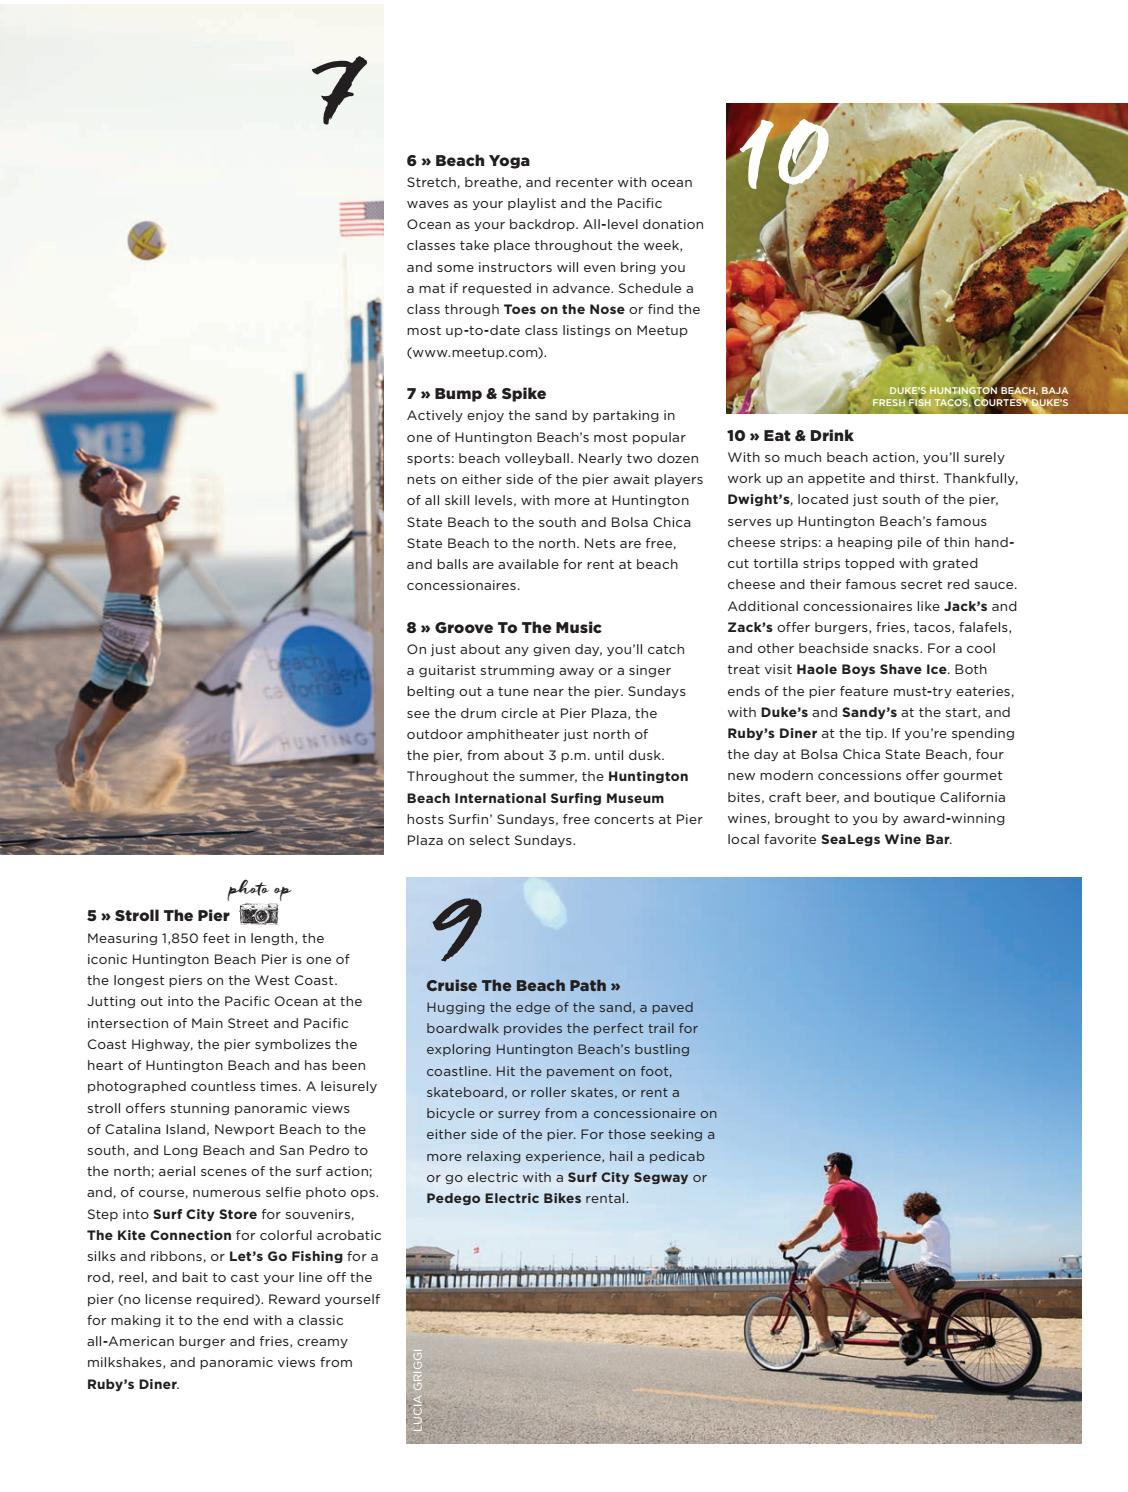 Huntington Beach 2016 | 2017 Official Visitors Guide by